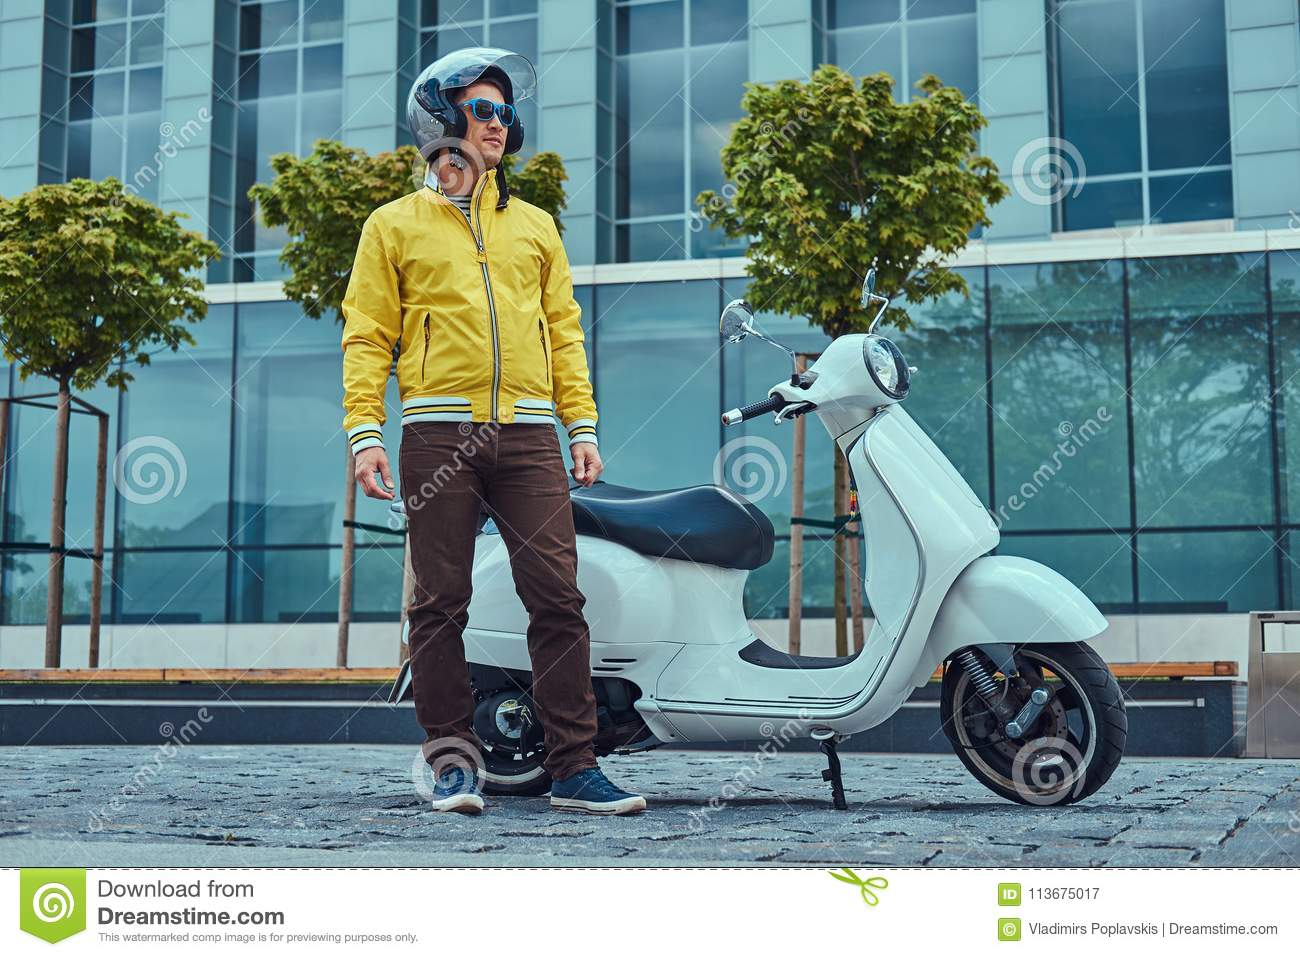 554 Yellow Classic Scooter Photos Free Royalty Free Stock Photos From Dreamstime